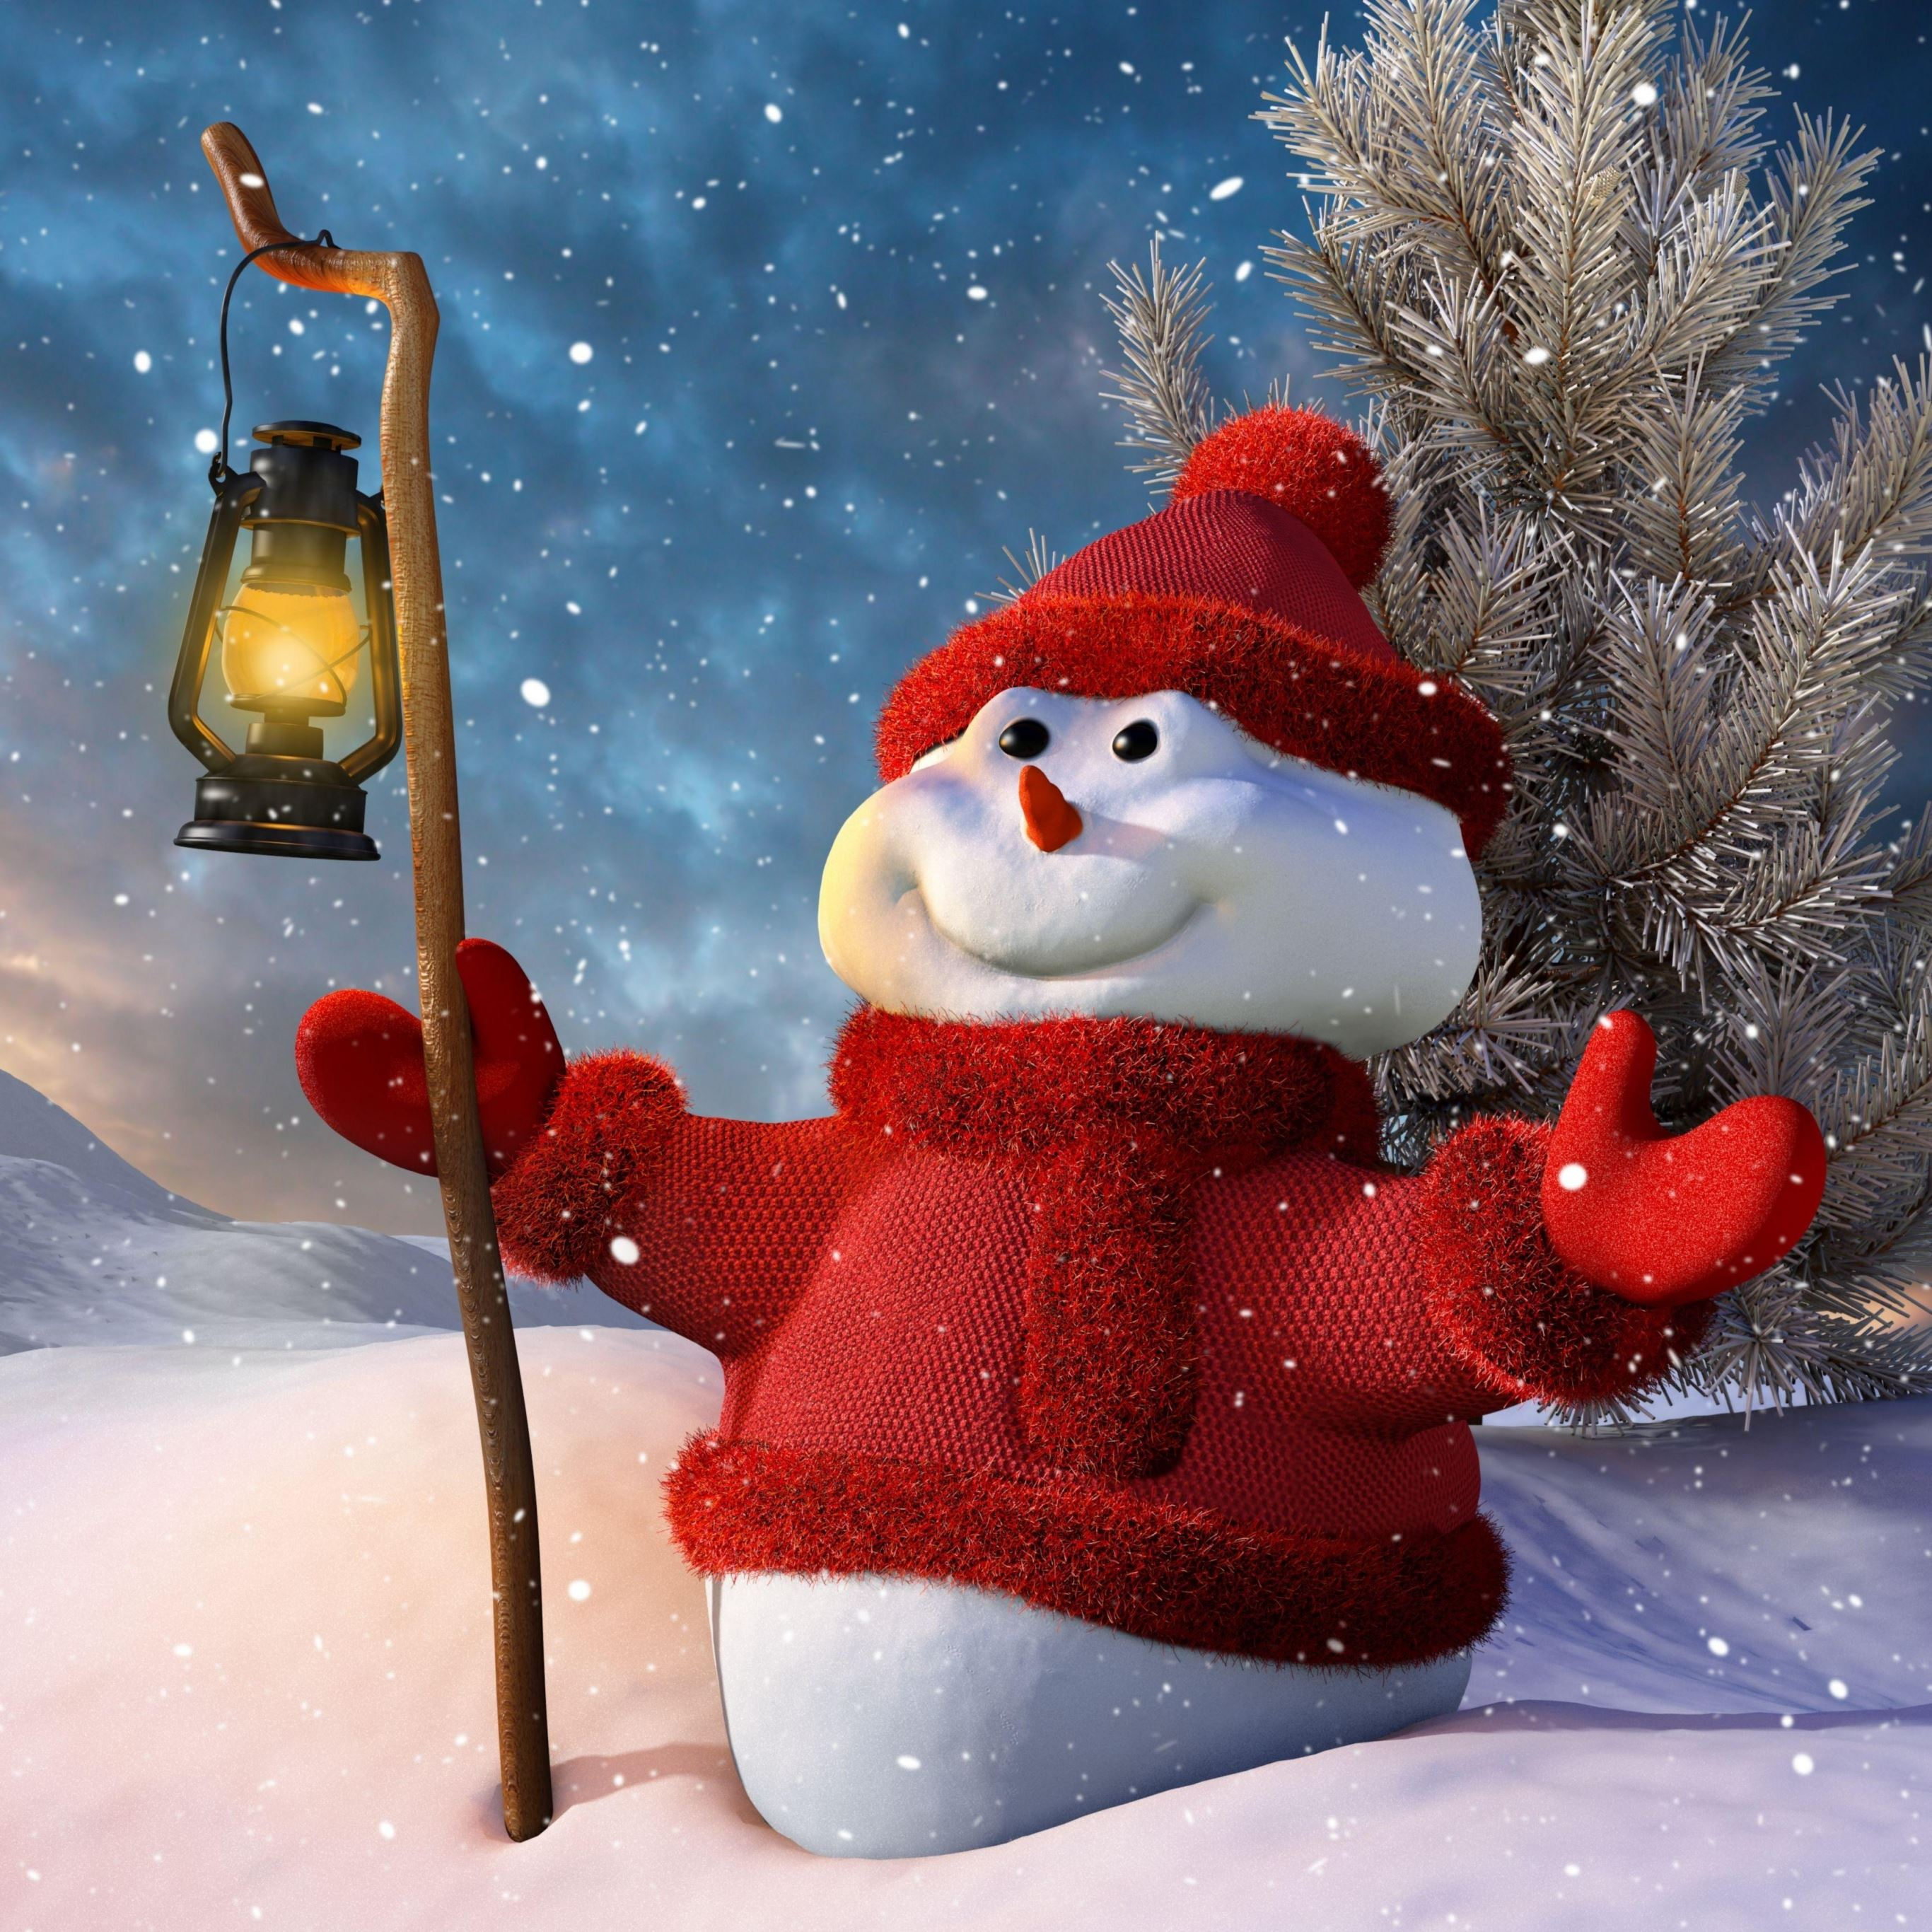 christmas snowman ipad pro wallpapers free download christmas snowman ipad pro wallpapers